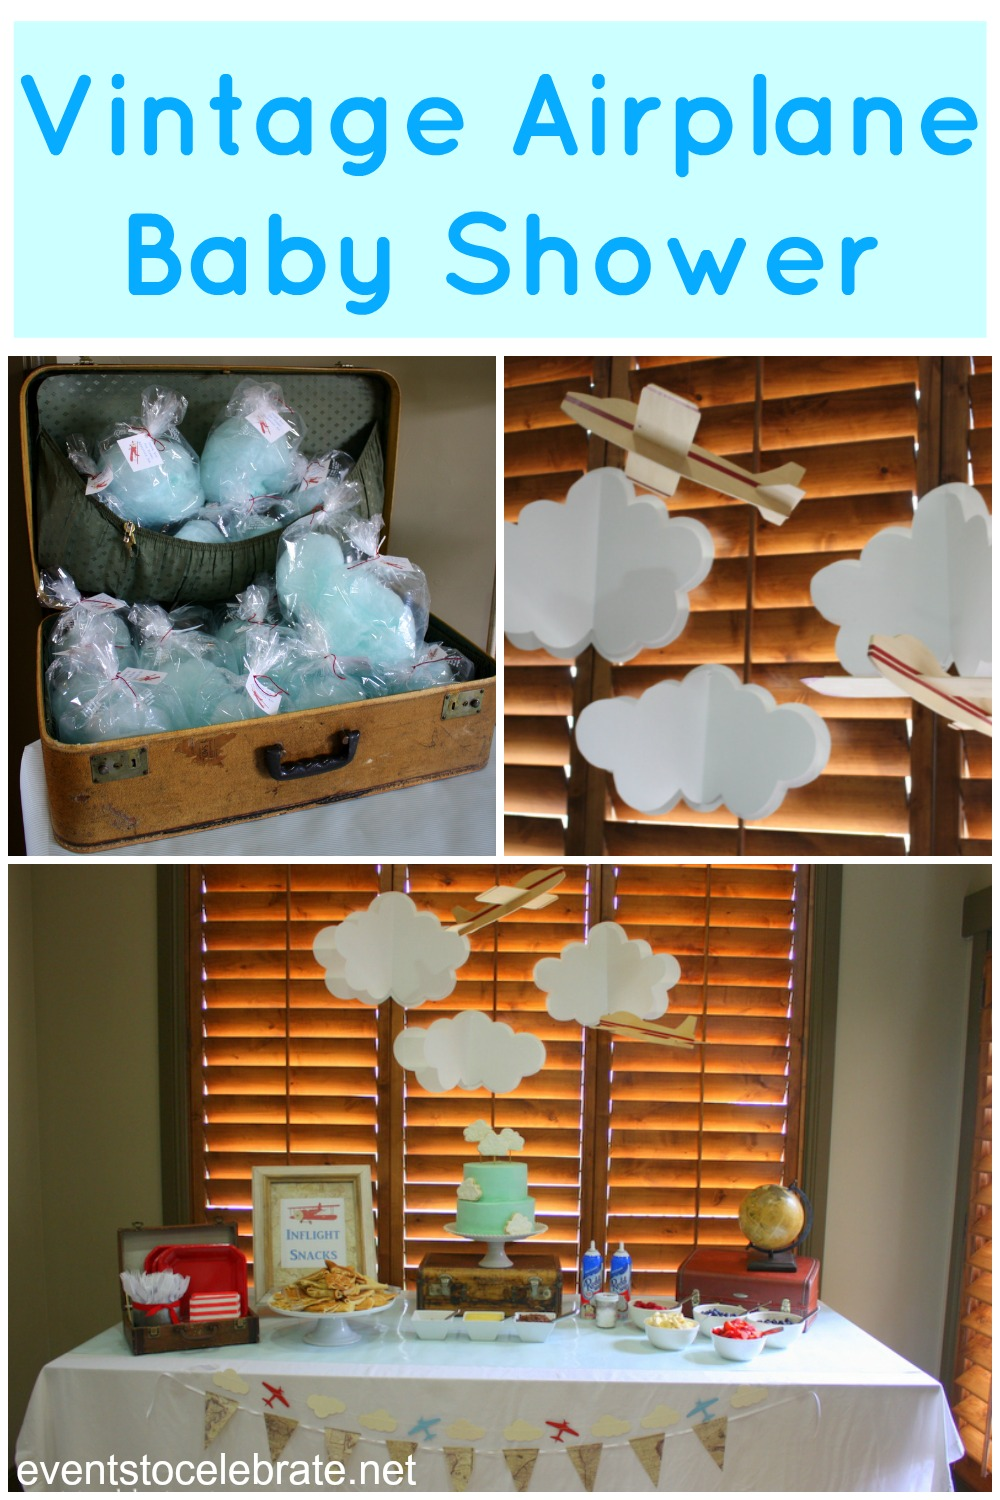 Vintage Airplane Baby Shower   Events To Celebrate